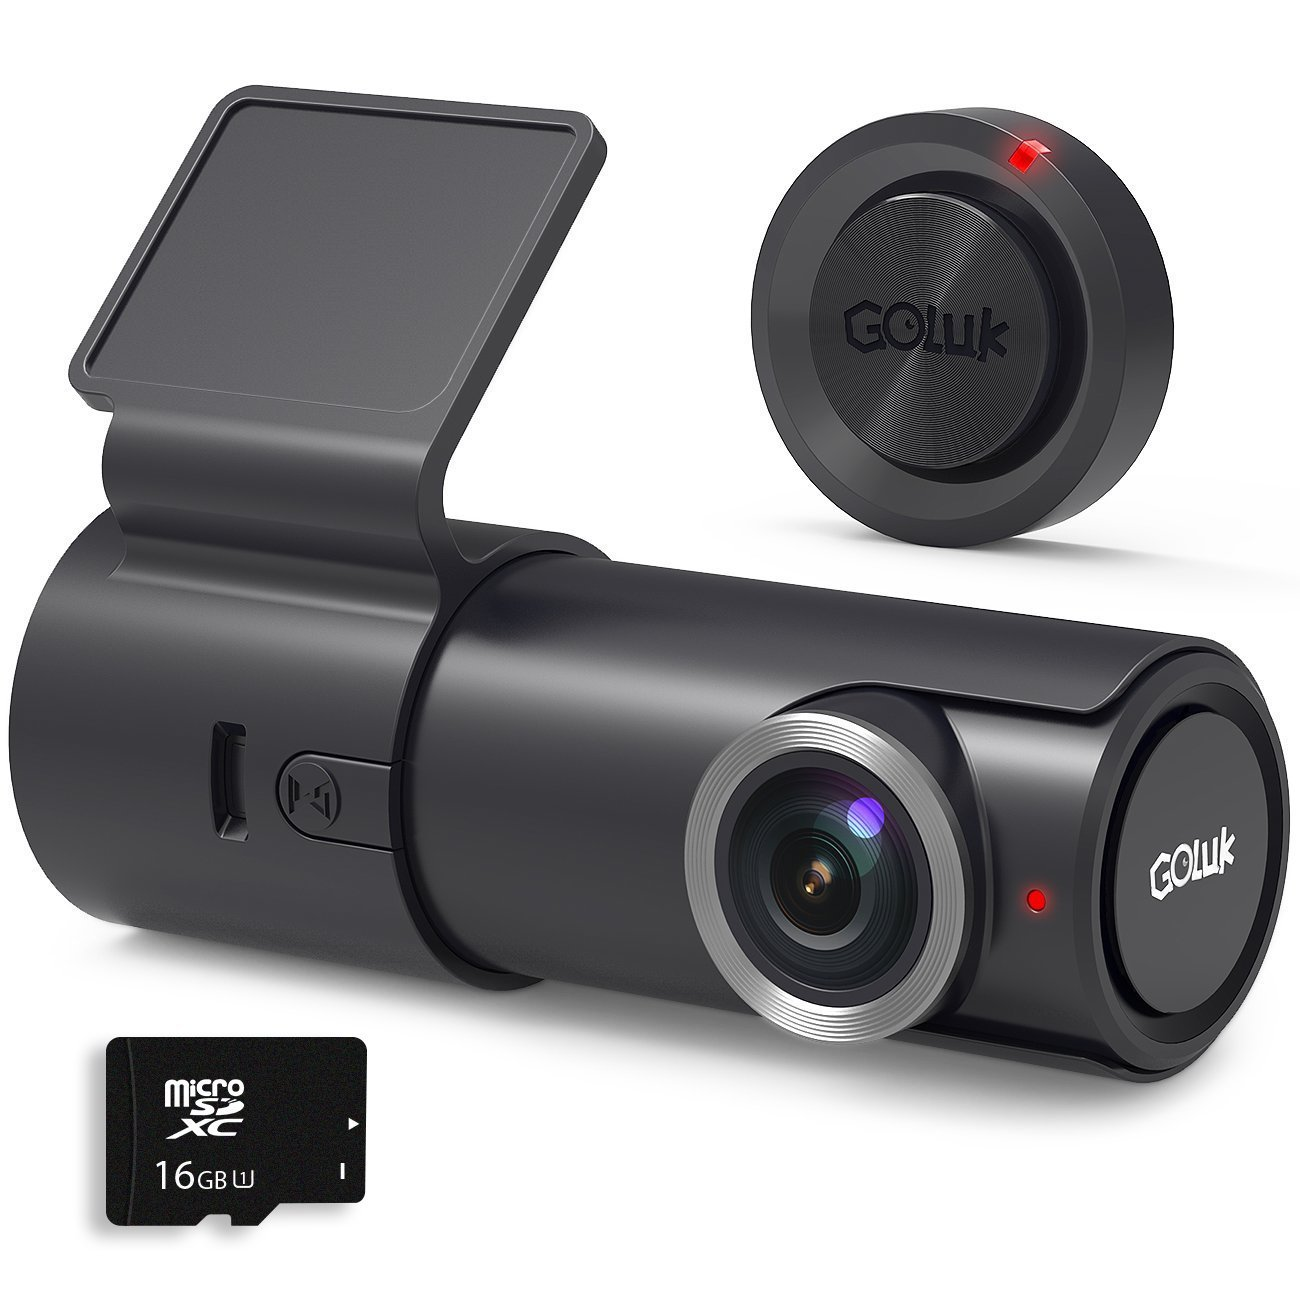 Goluk T2 FHD 1080P 152° WDR Car Dash Cam with G-sensor for Real Time Video Sharing, Motion Detection, Traffic Accident Disputes, Parking Monitor Loop Recording